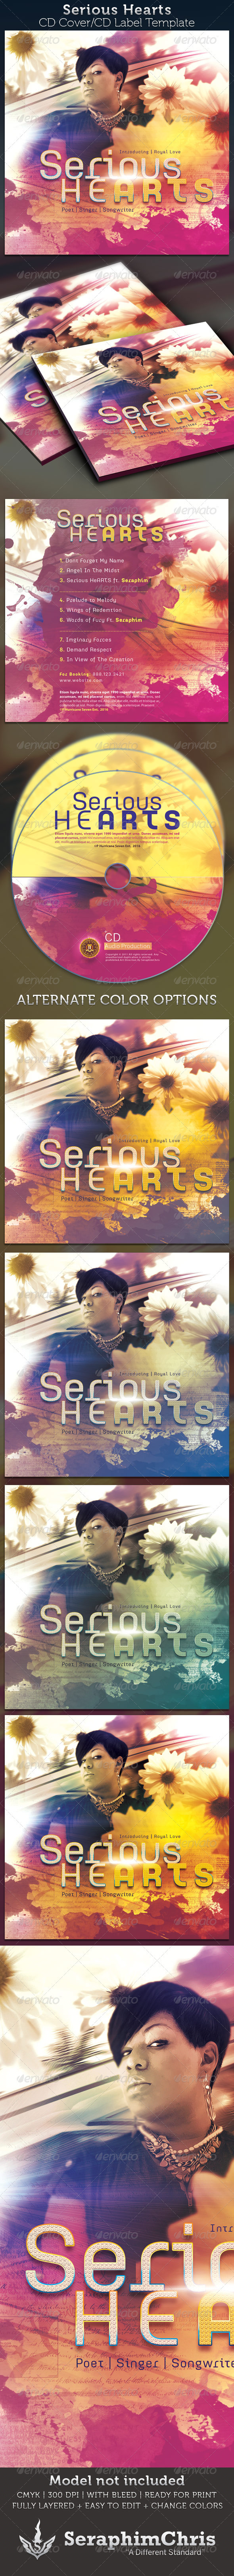 GraphicRiver Serious Hearts CD Cover Artwork Template 2469322